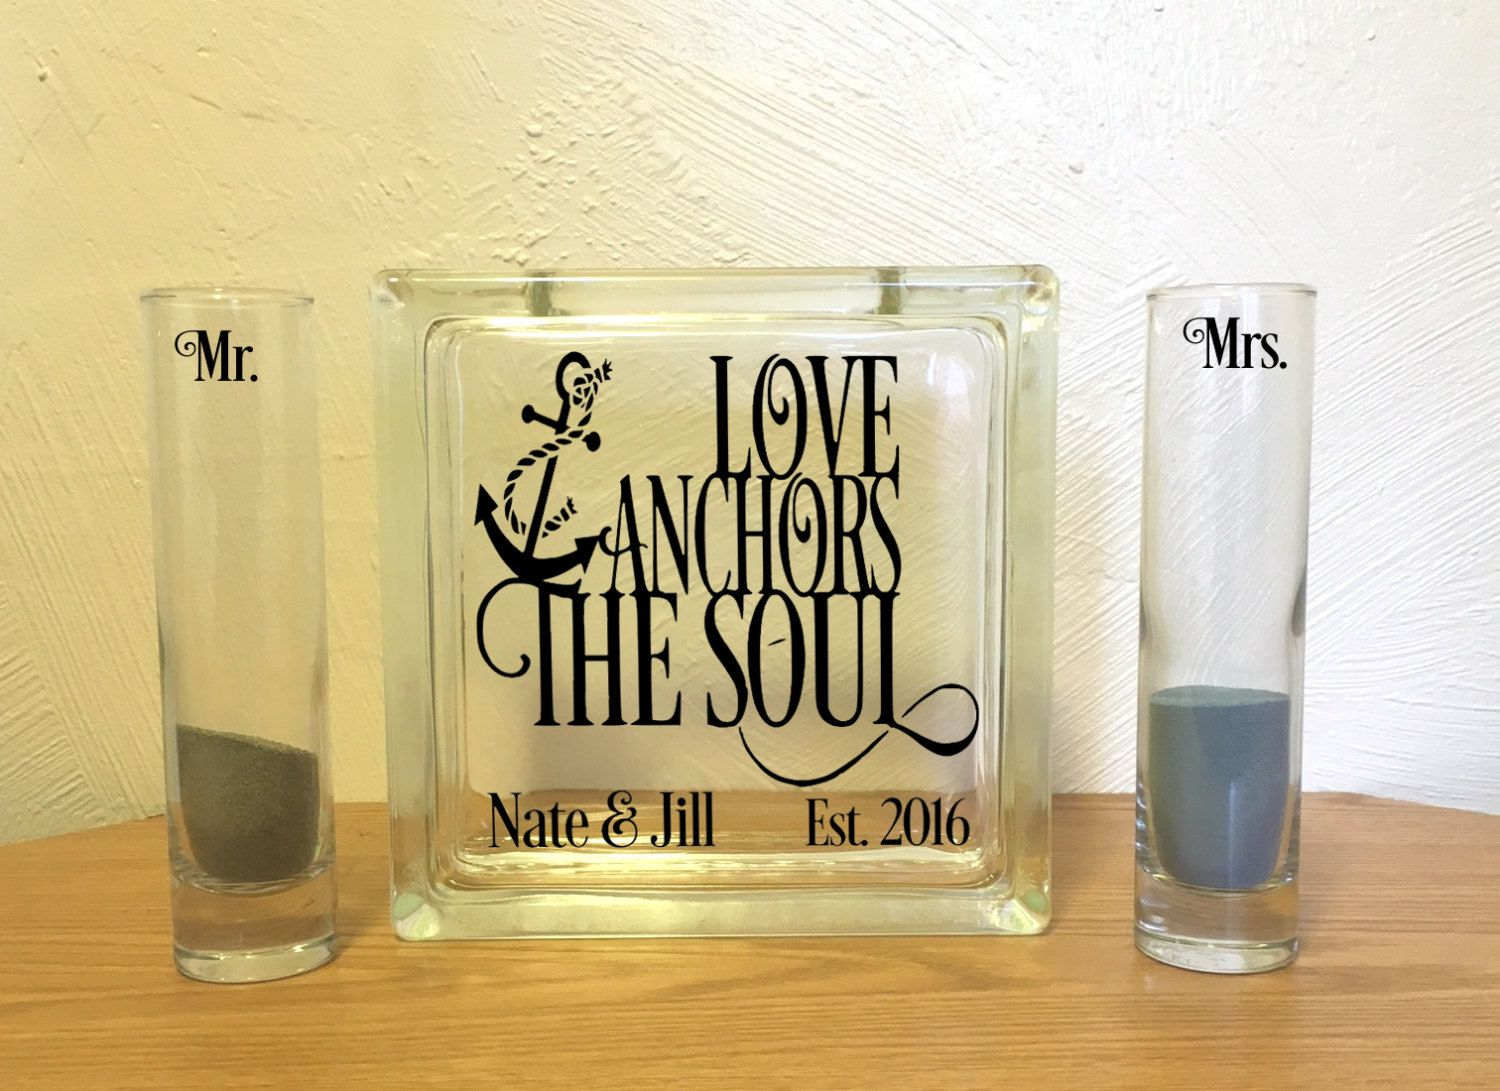 Love anchors the soul nautical unity sand ceremony set anchor love anchors the soul nautical unity sand ceremony set anchor unity set by vinyldzines reviewsmspy